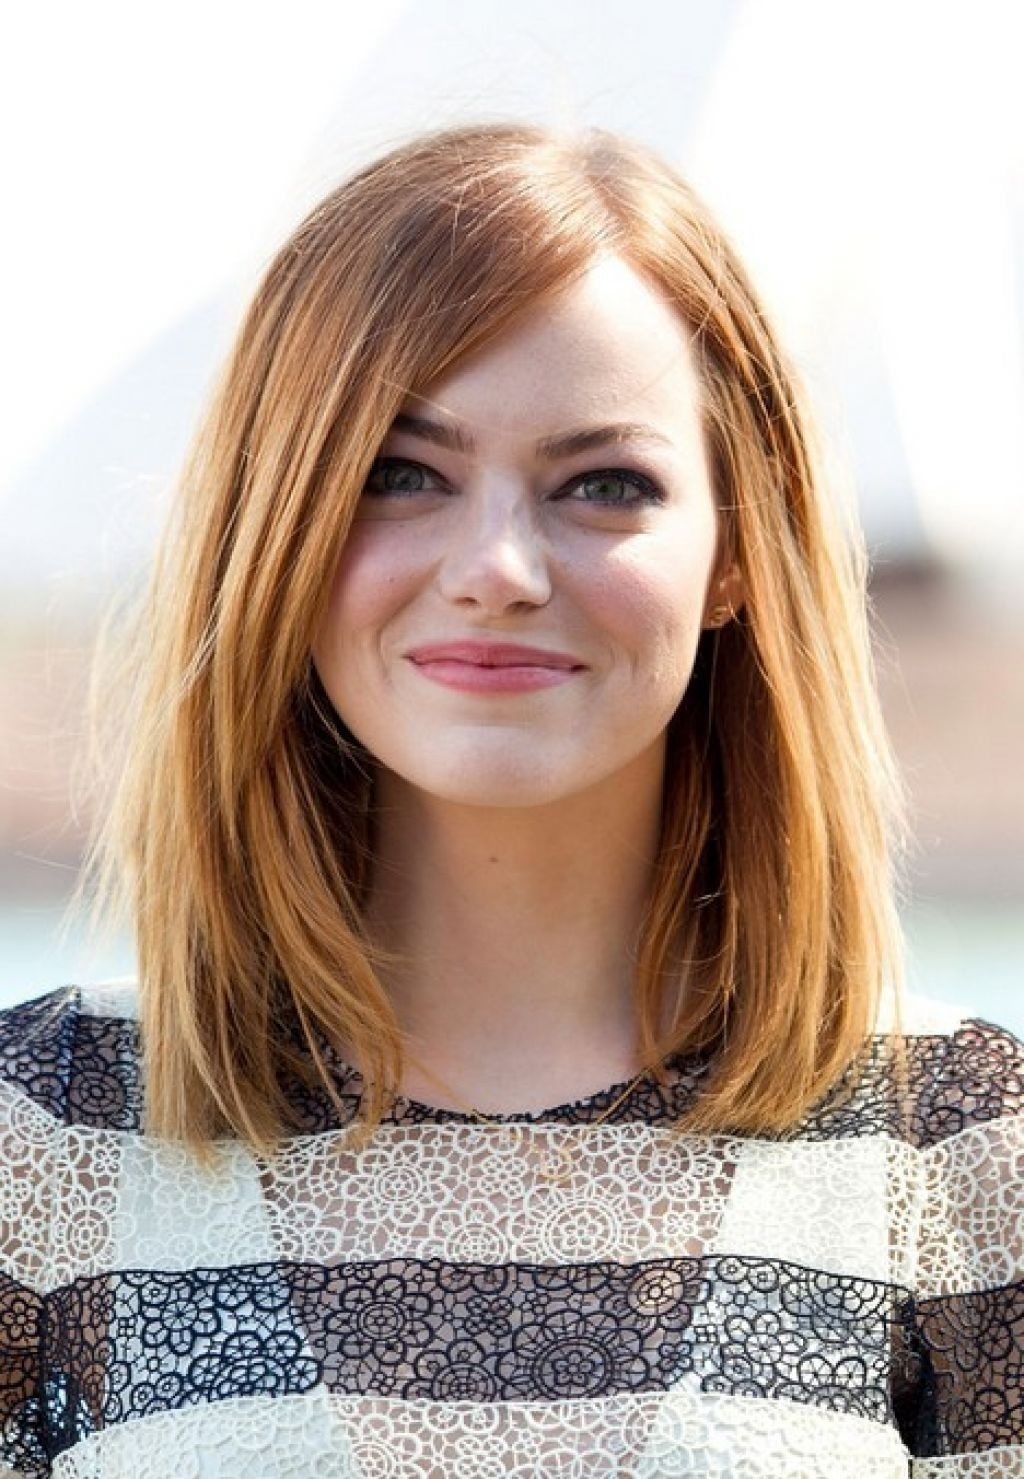 Asian Women Hairstyles For Round Faces Haircut For Round Chubby Face inside The best Short Hair For Asian Round Face